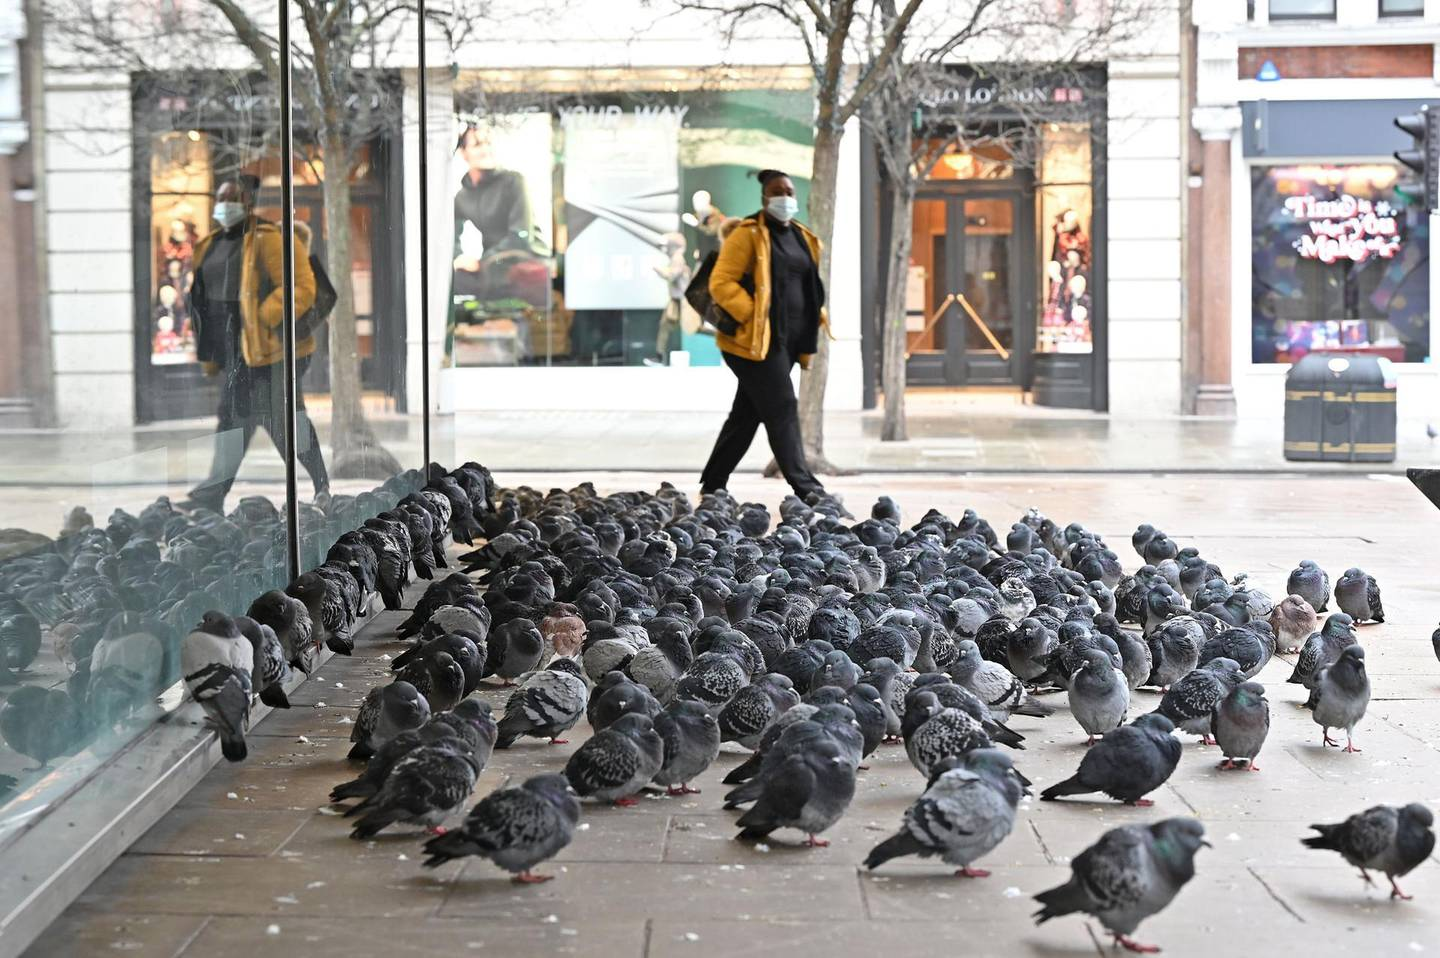 Pidgeons gather outside the shuttered entrance to a John Lewis department store, closed down due to lockdown restrictions, on an empty Oxford Street as Britain enters another national lockdown in London on January 5, 2021. England's six-week lockdown, which began at midnight, emulates the first national coronavirus curbs in place from March to June -- but goes further than another instituted in November when schools remained open. Authorities in Wales, Scotland and Northern Ireland have all taken similar measures, putting the UK as a whole in lockdown.  / AFP / JUSTIN TALLIS